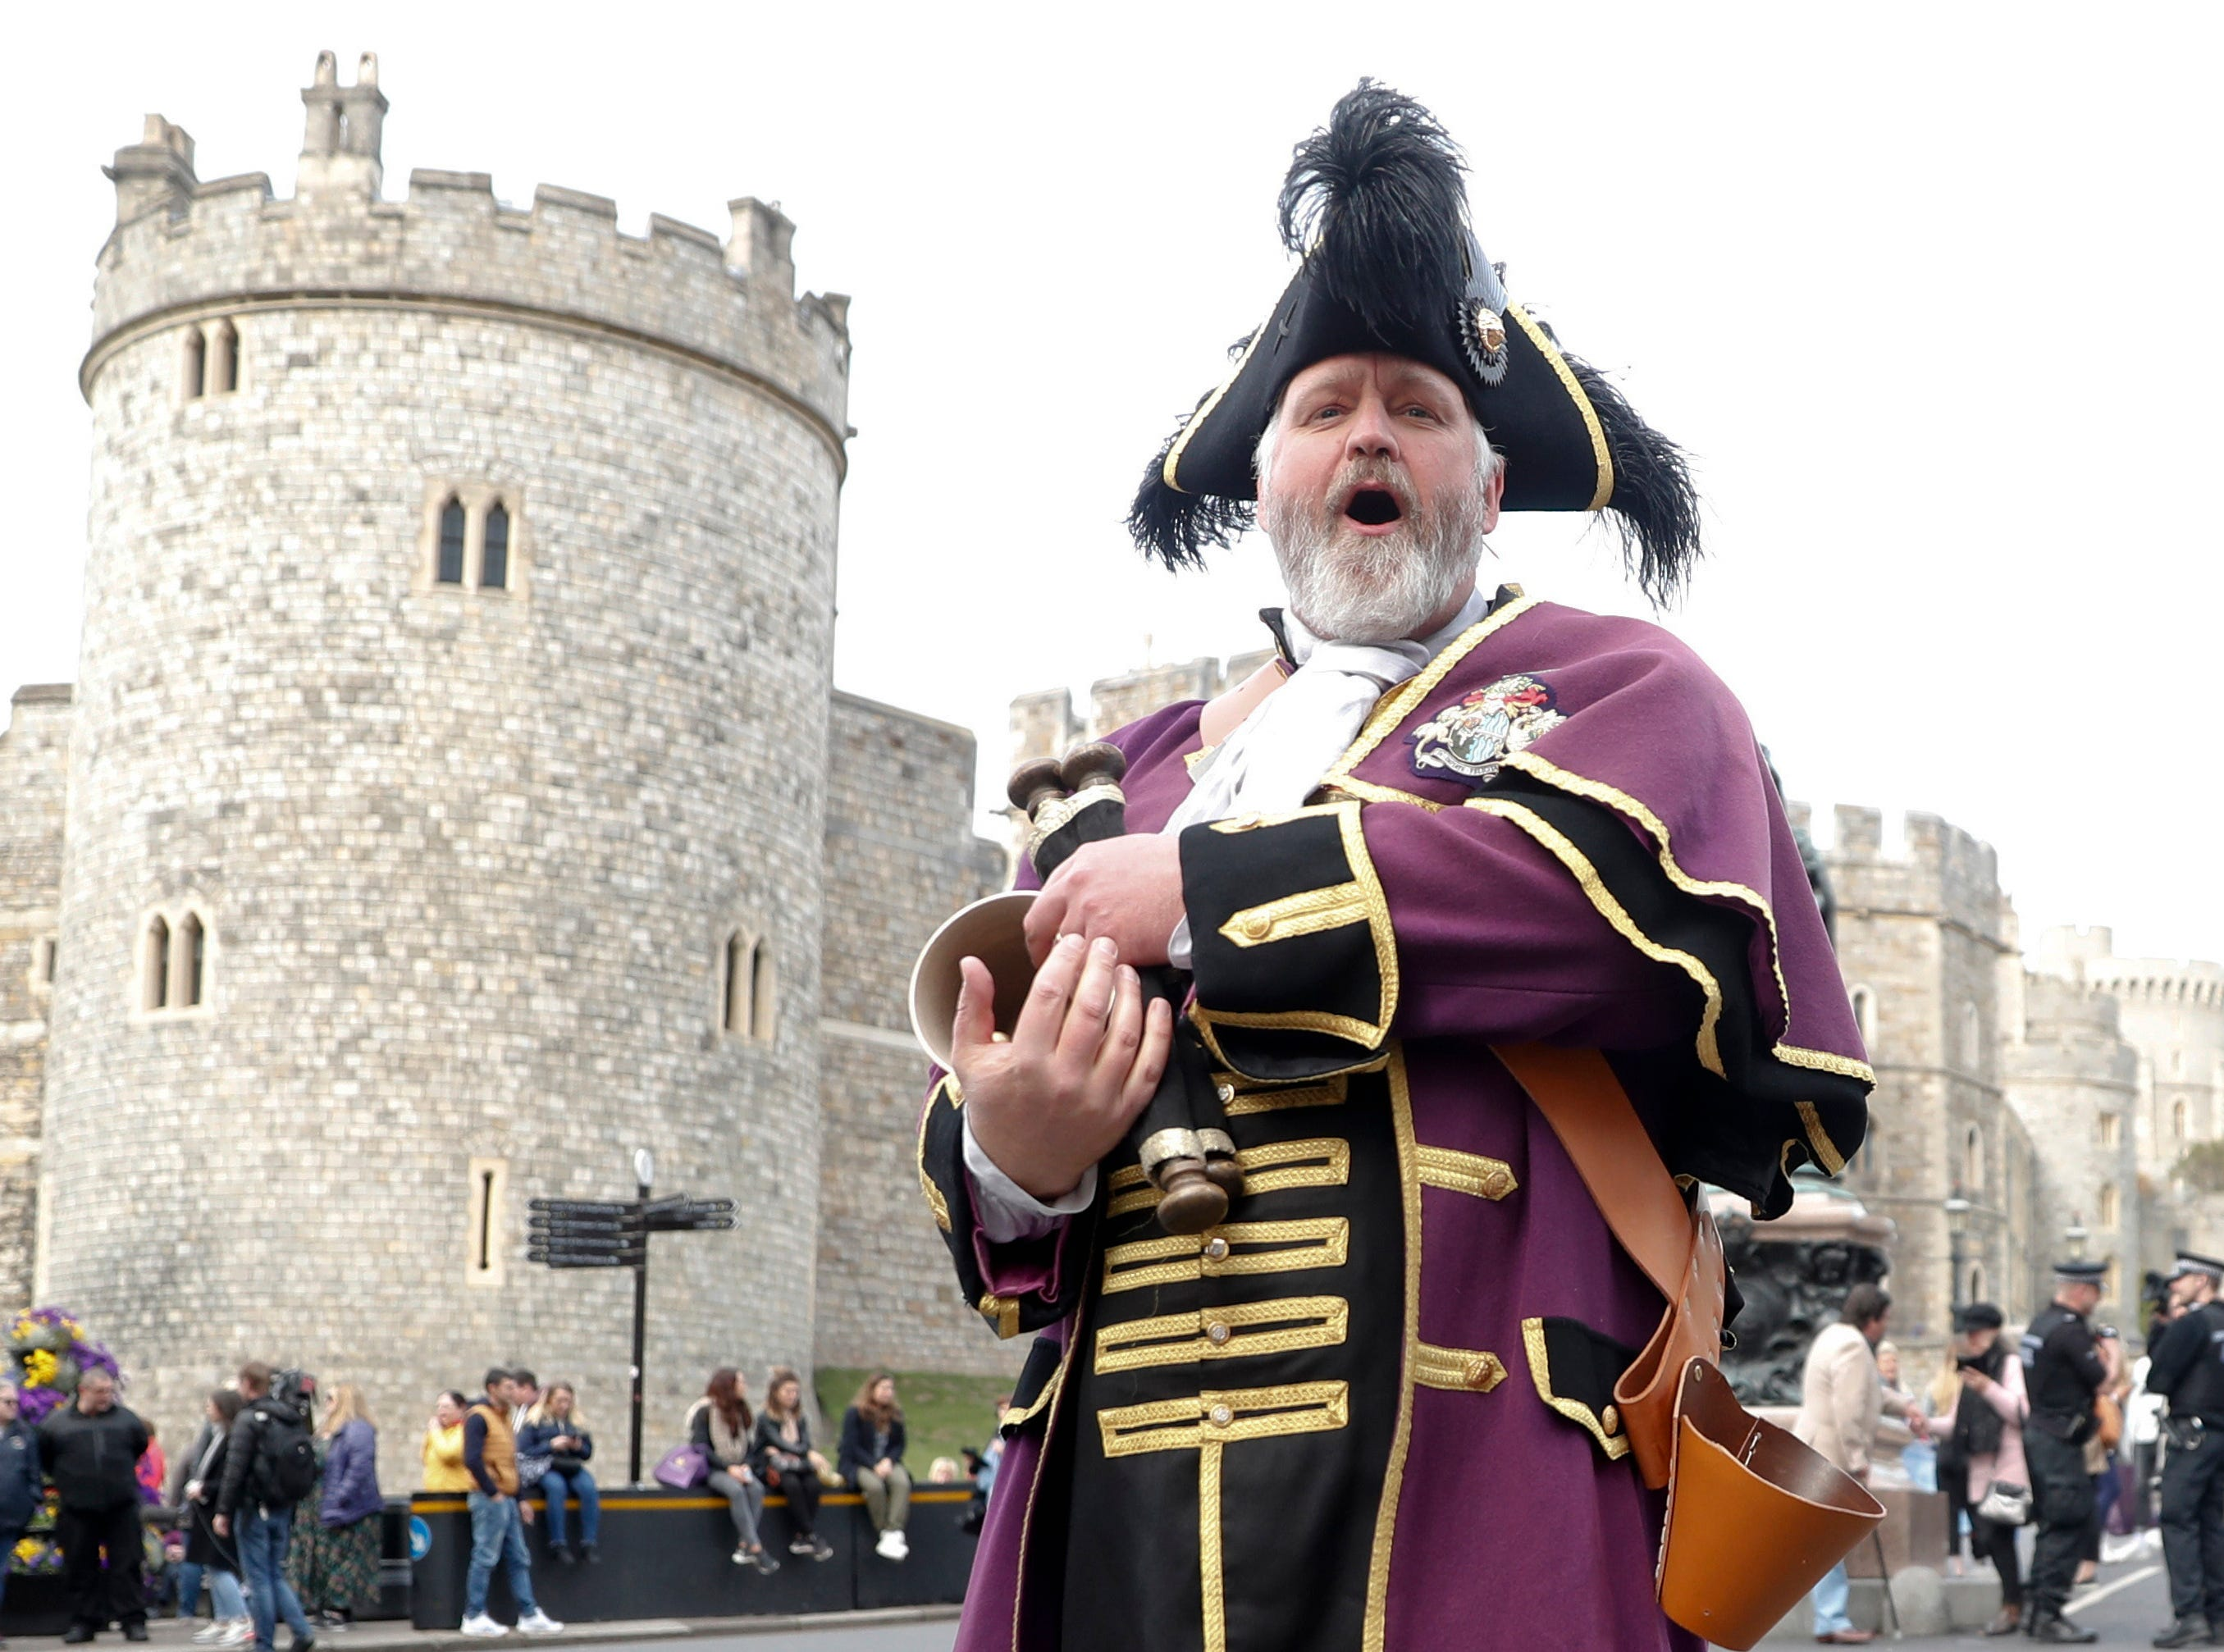 Royal Borough of Windsor and Maidenhead official Town Crier Chris Brown announces the news of the birth of a baby boy to Prince Harry and his wife Meghan, Duchess of Sussex, outside Windsor Castle in Windsor, England, Monday.